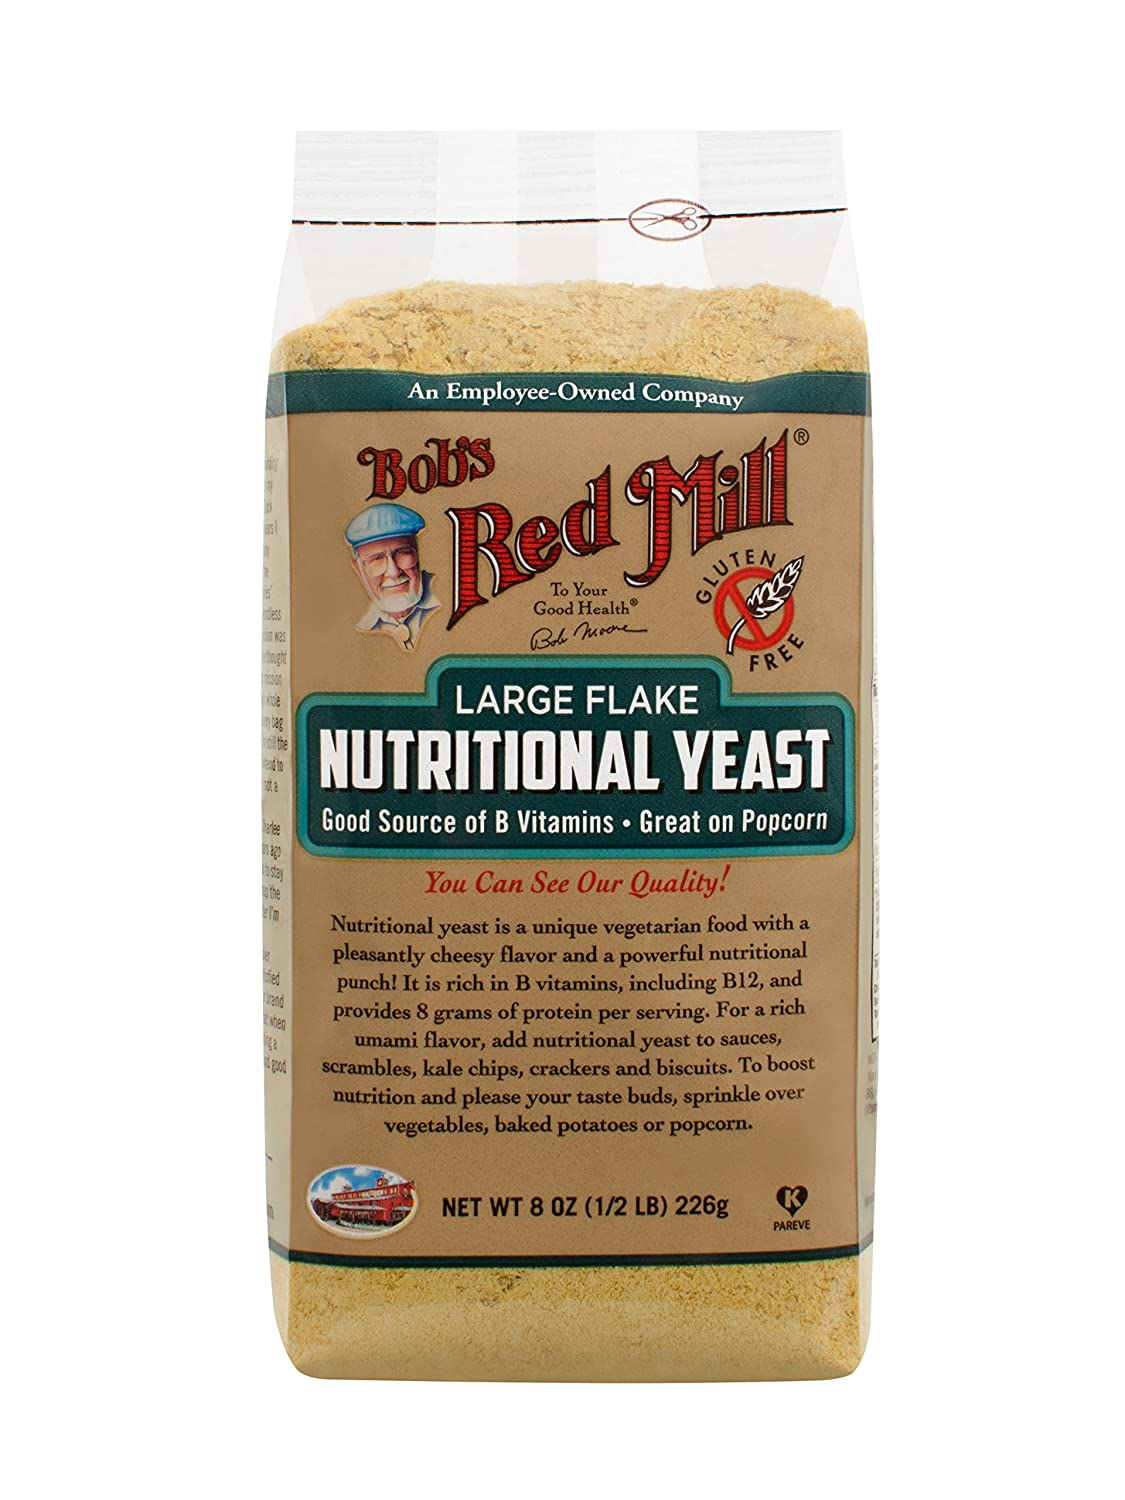 Nutritional Yeast Near Me